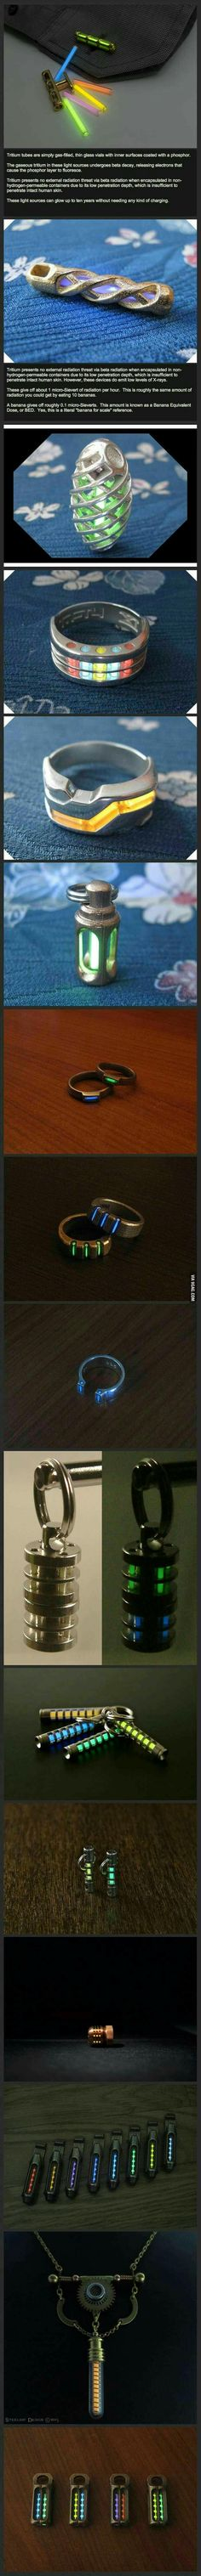 Tritium - 9GAG >>> WHERE CAN I BUY ONE?!?!?!?!